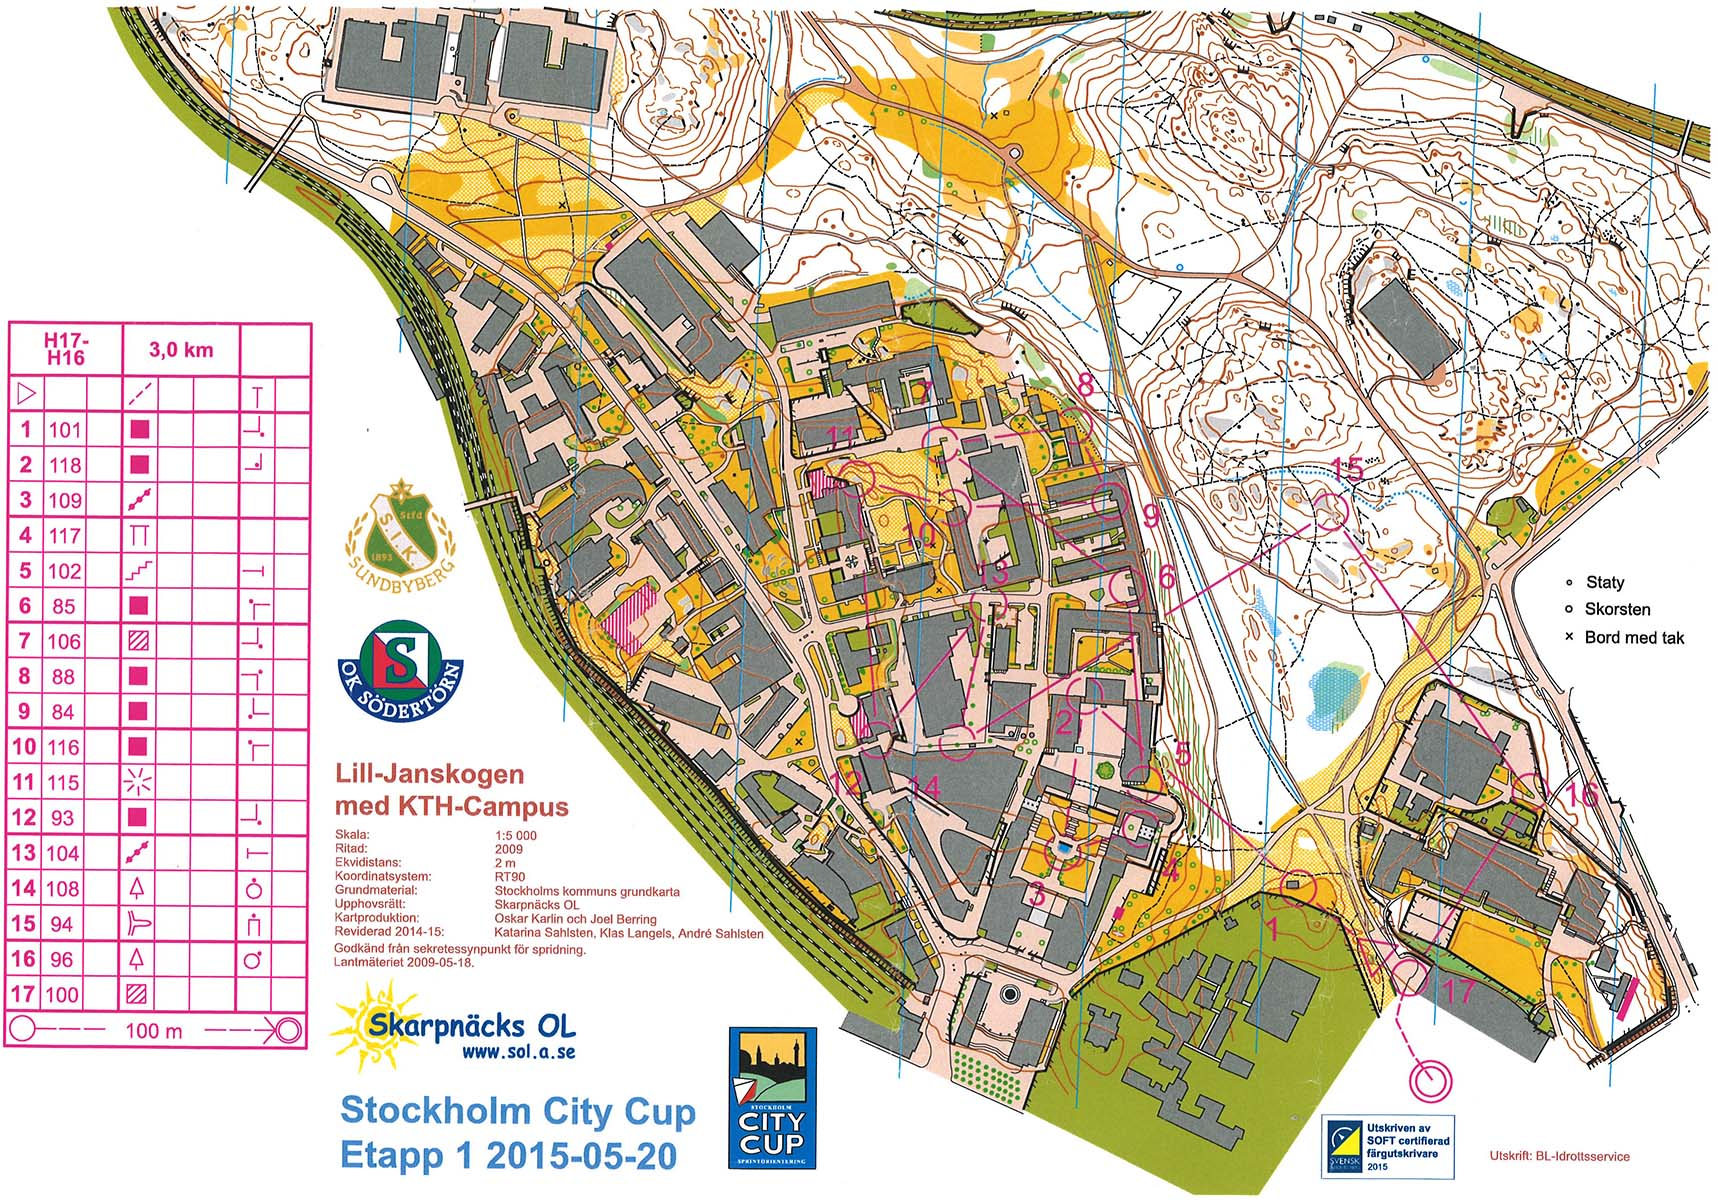 Stockholm City Cup 1 (20.05.2015)